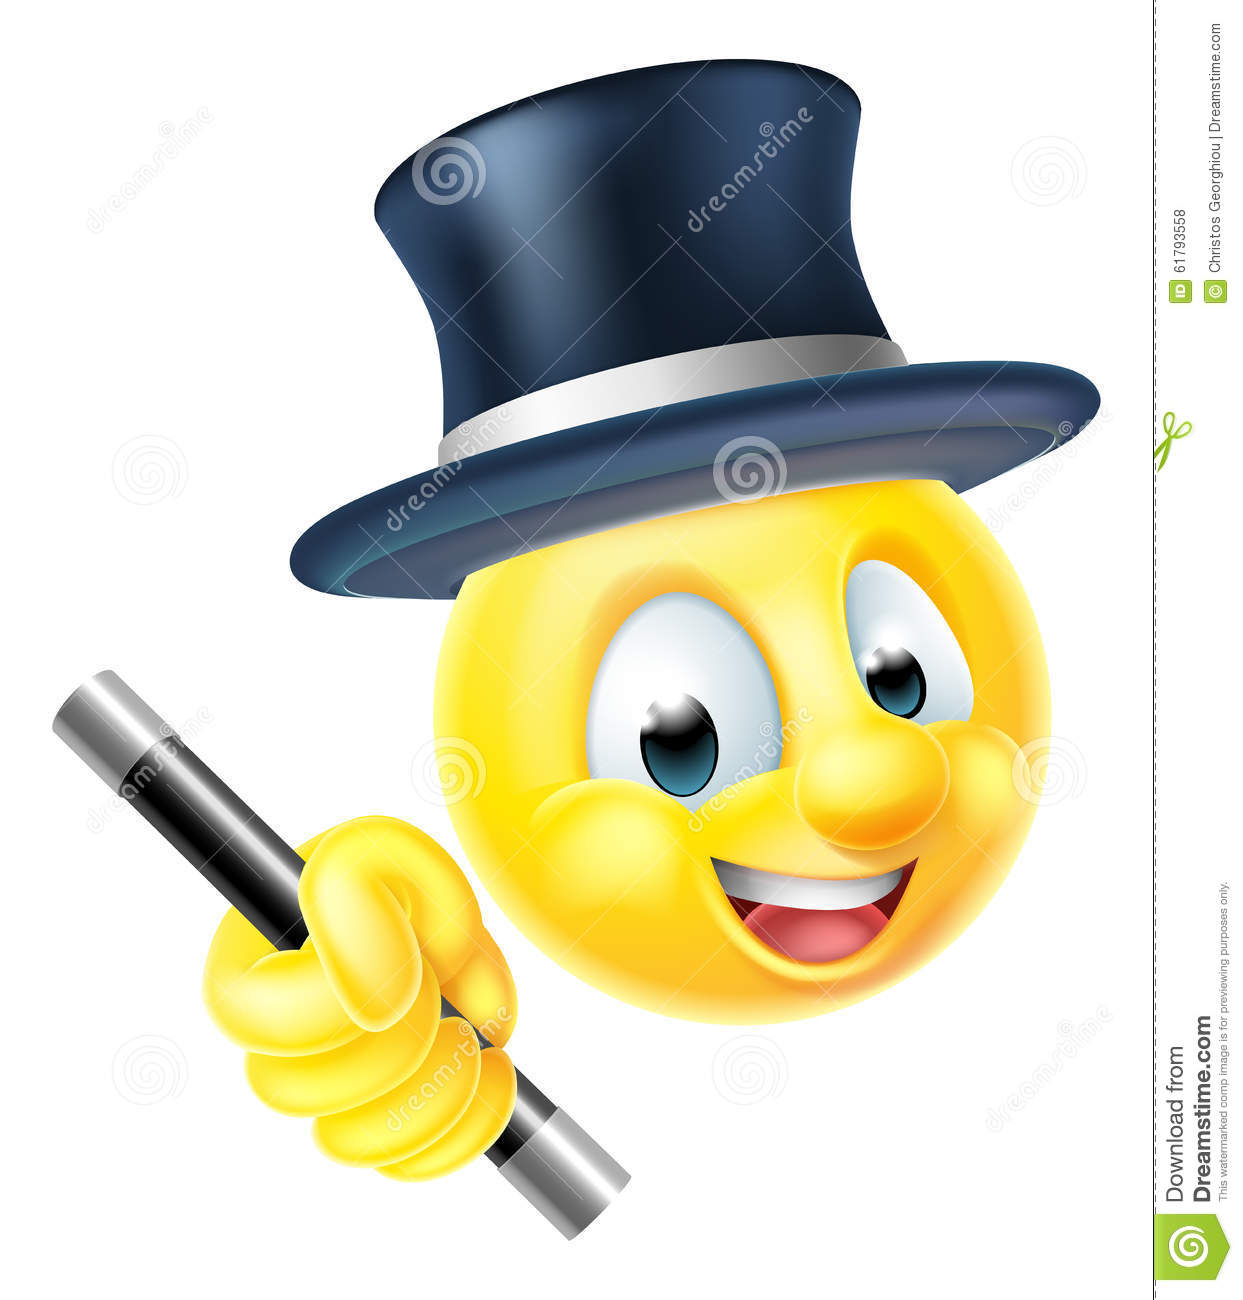 Mad Cartoon Face further Schwimmen Im Geld as well 464574517792720856 likewise Content as well Smile. on cartoon smiley faces